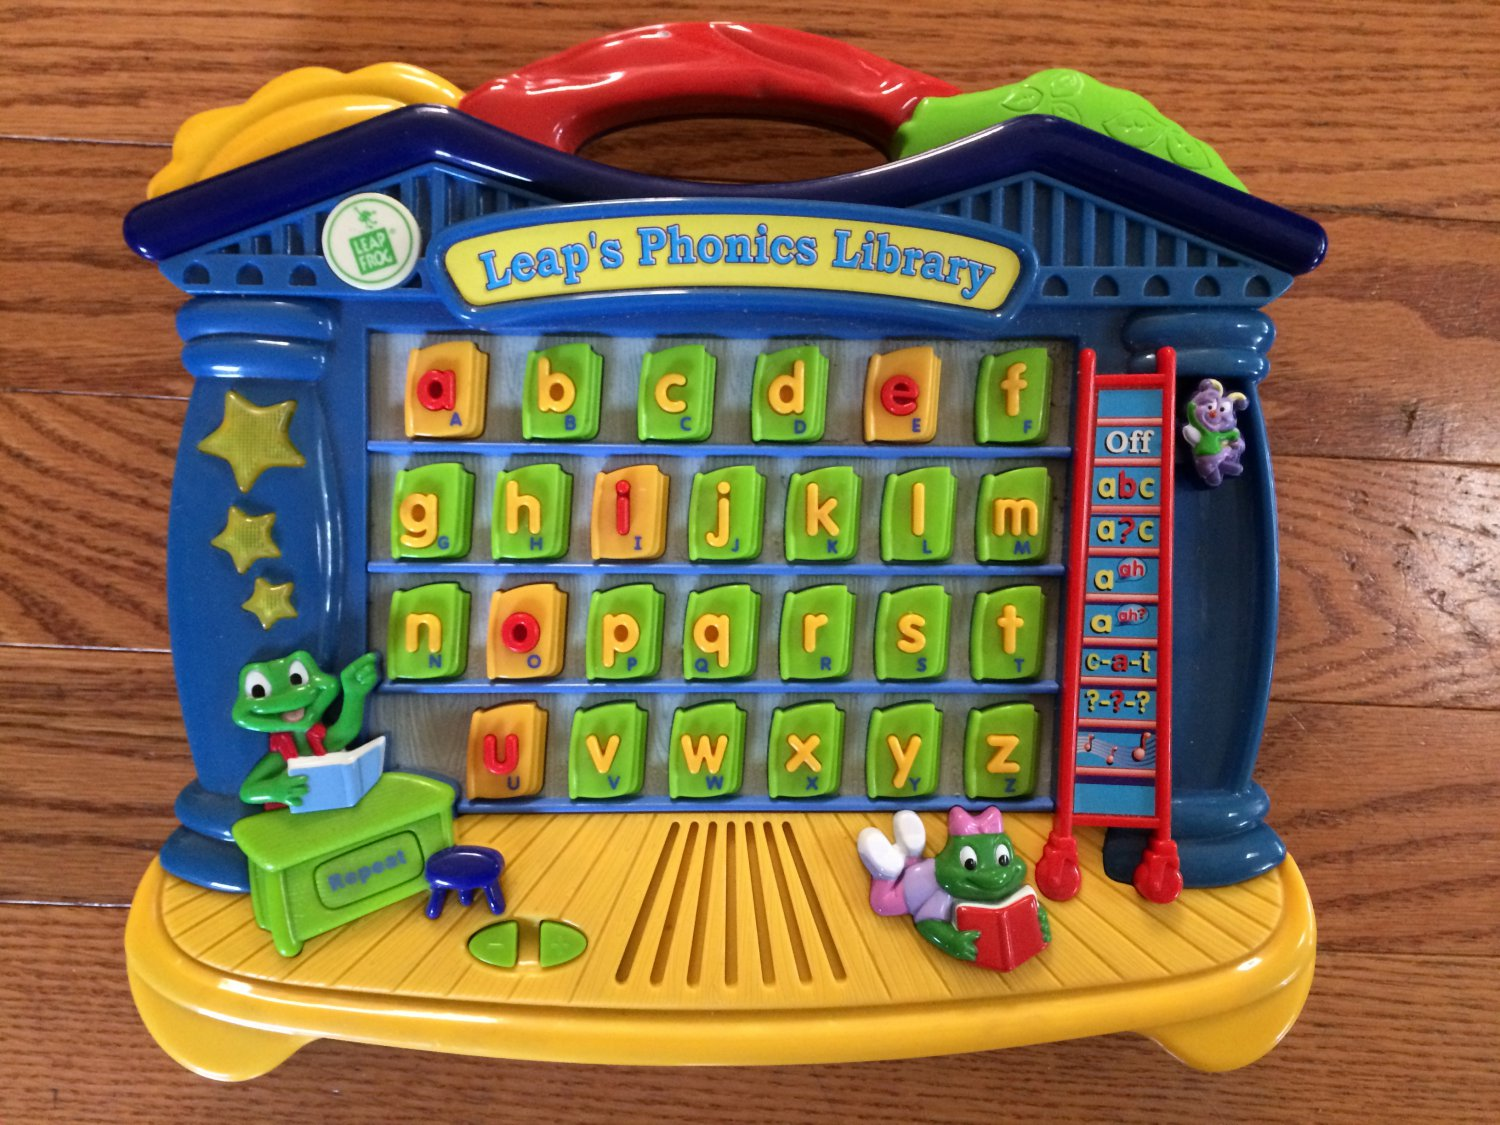 LEAP FROG Leap's Phonics Library ABCs Alphabet Spelling